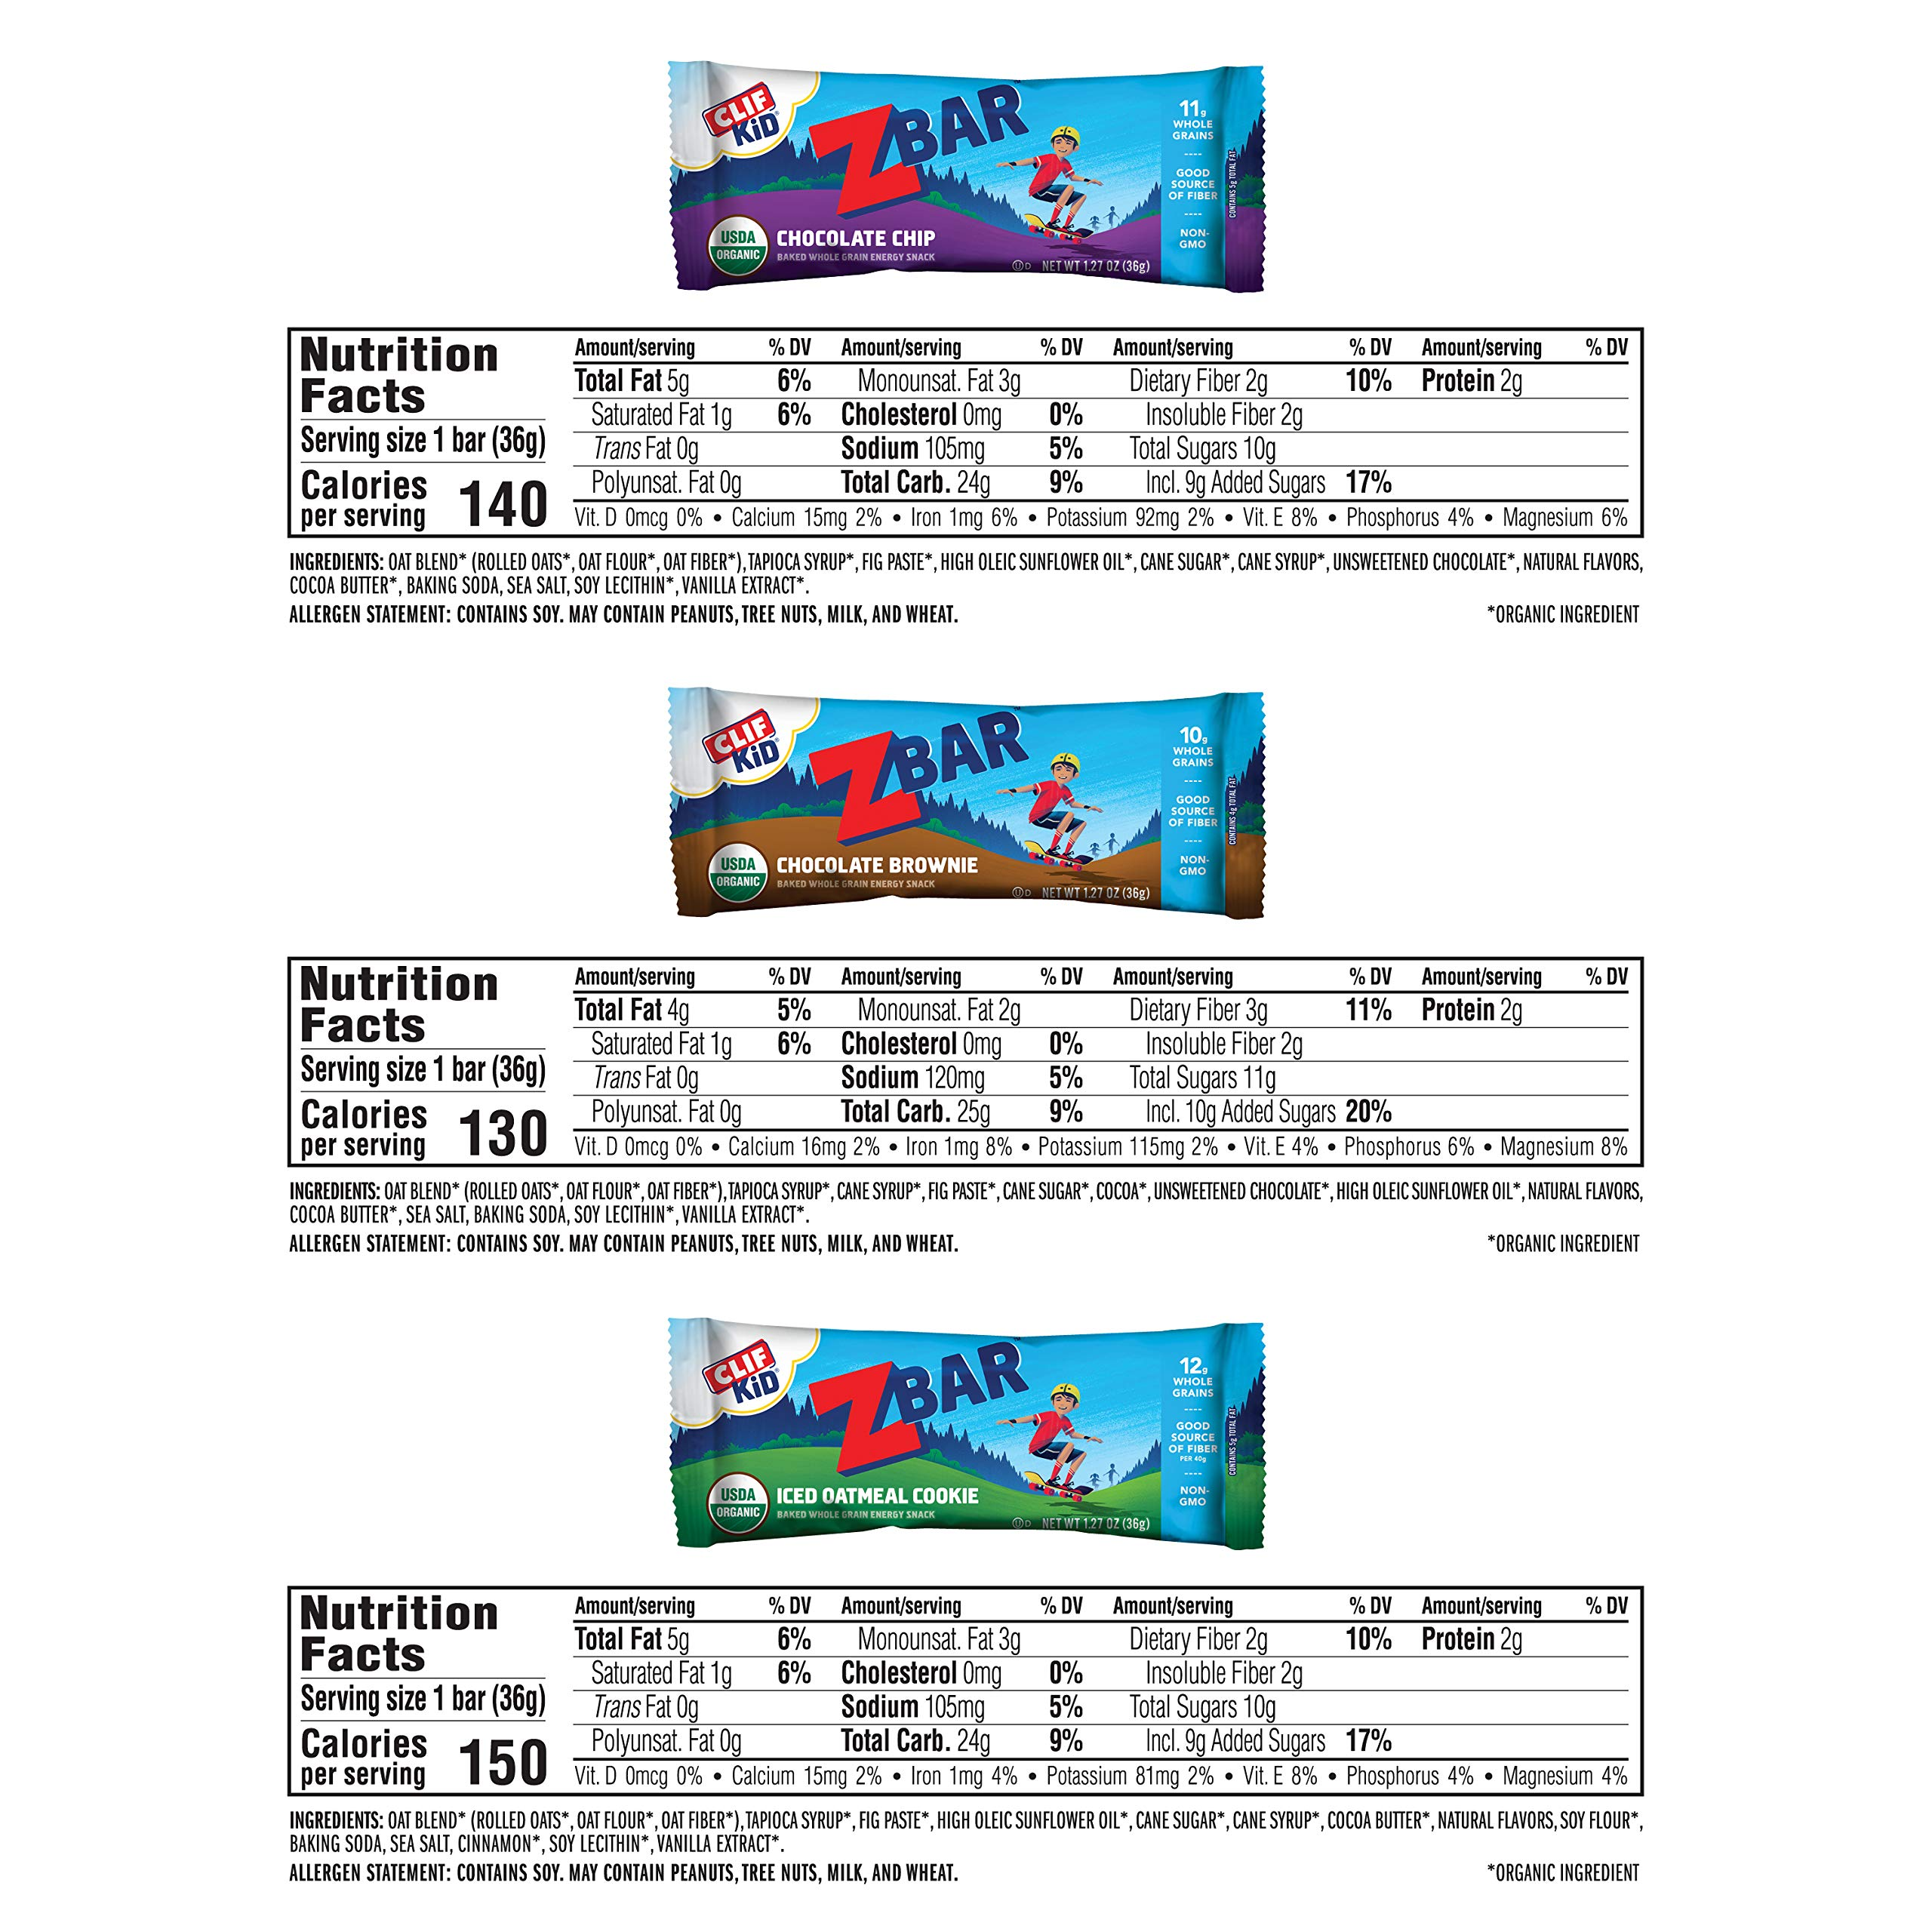 Clif Kid ZBAR - Organic Energy Bars - Value Pack - (1.27 Ounce Snack Bars, 36 Count) by Clif Bar (Image #5)